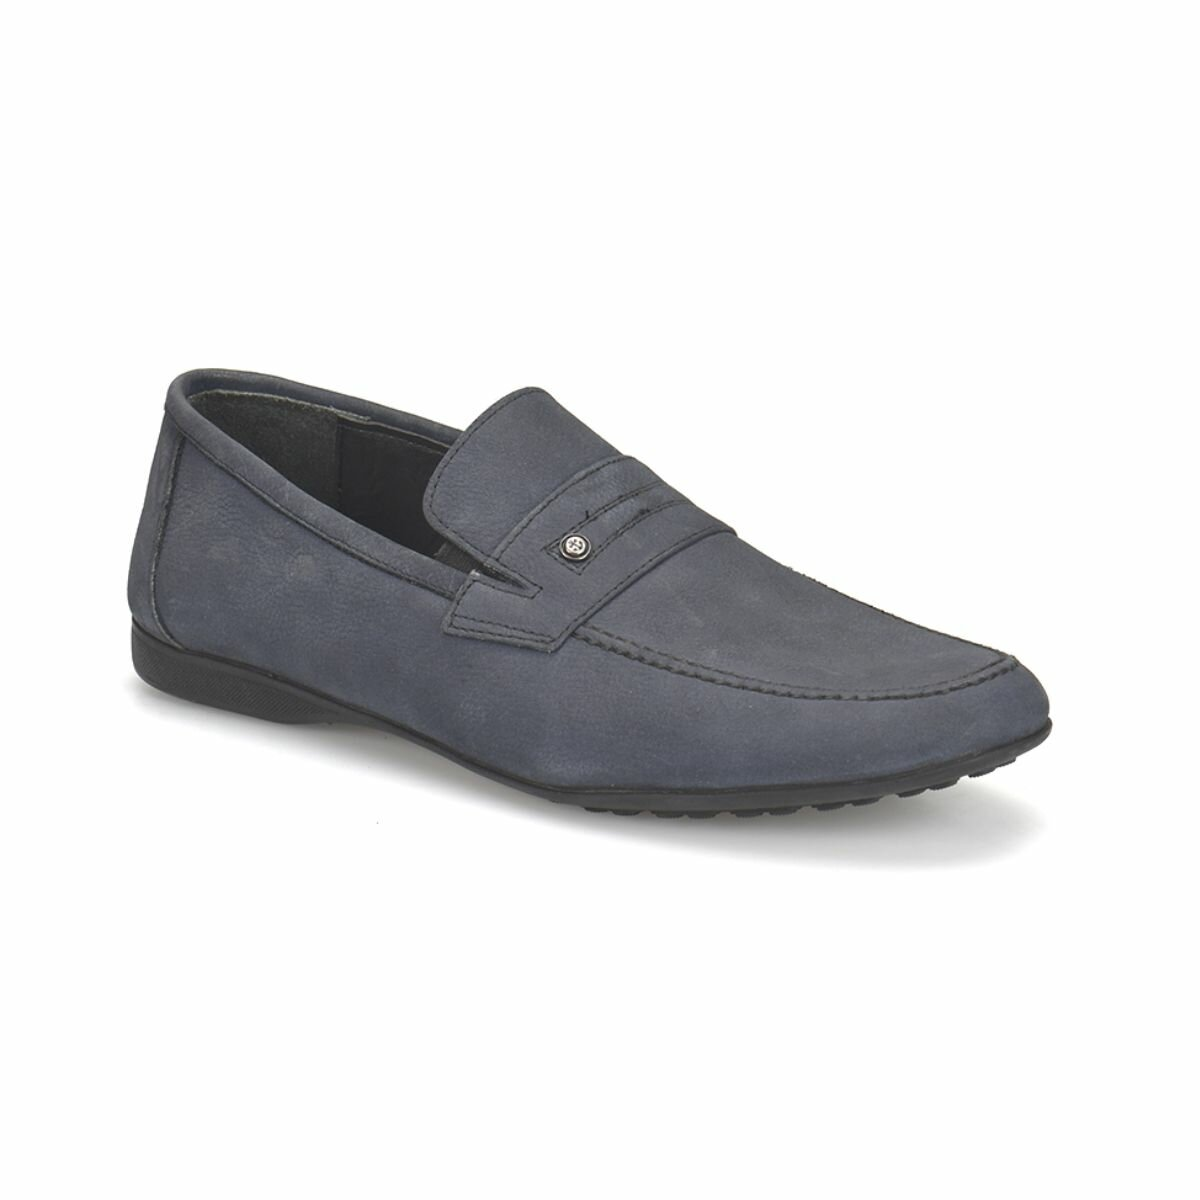 FLO 2663 Navy Blue Men 'S Classic Shoes Garamond